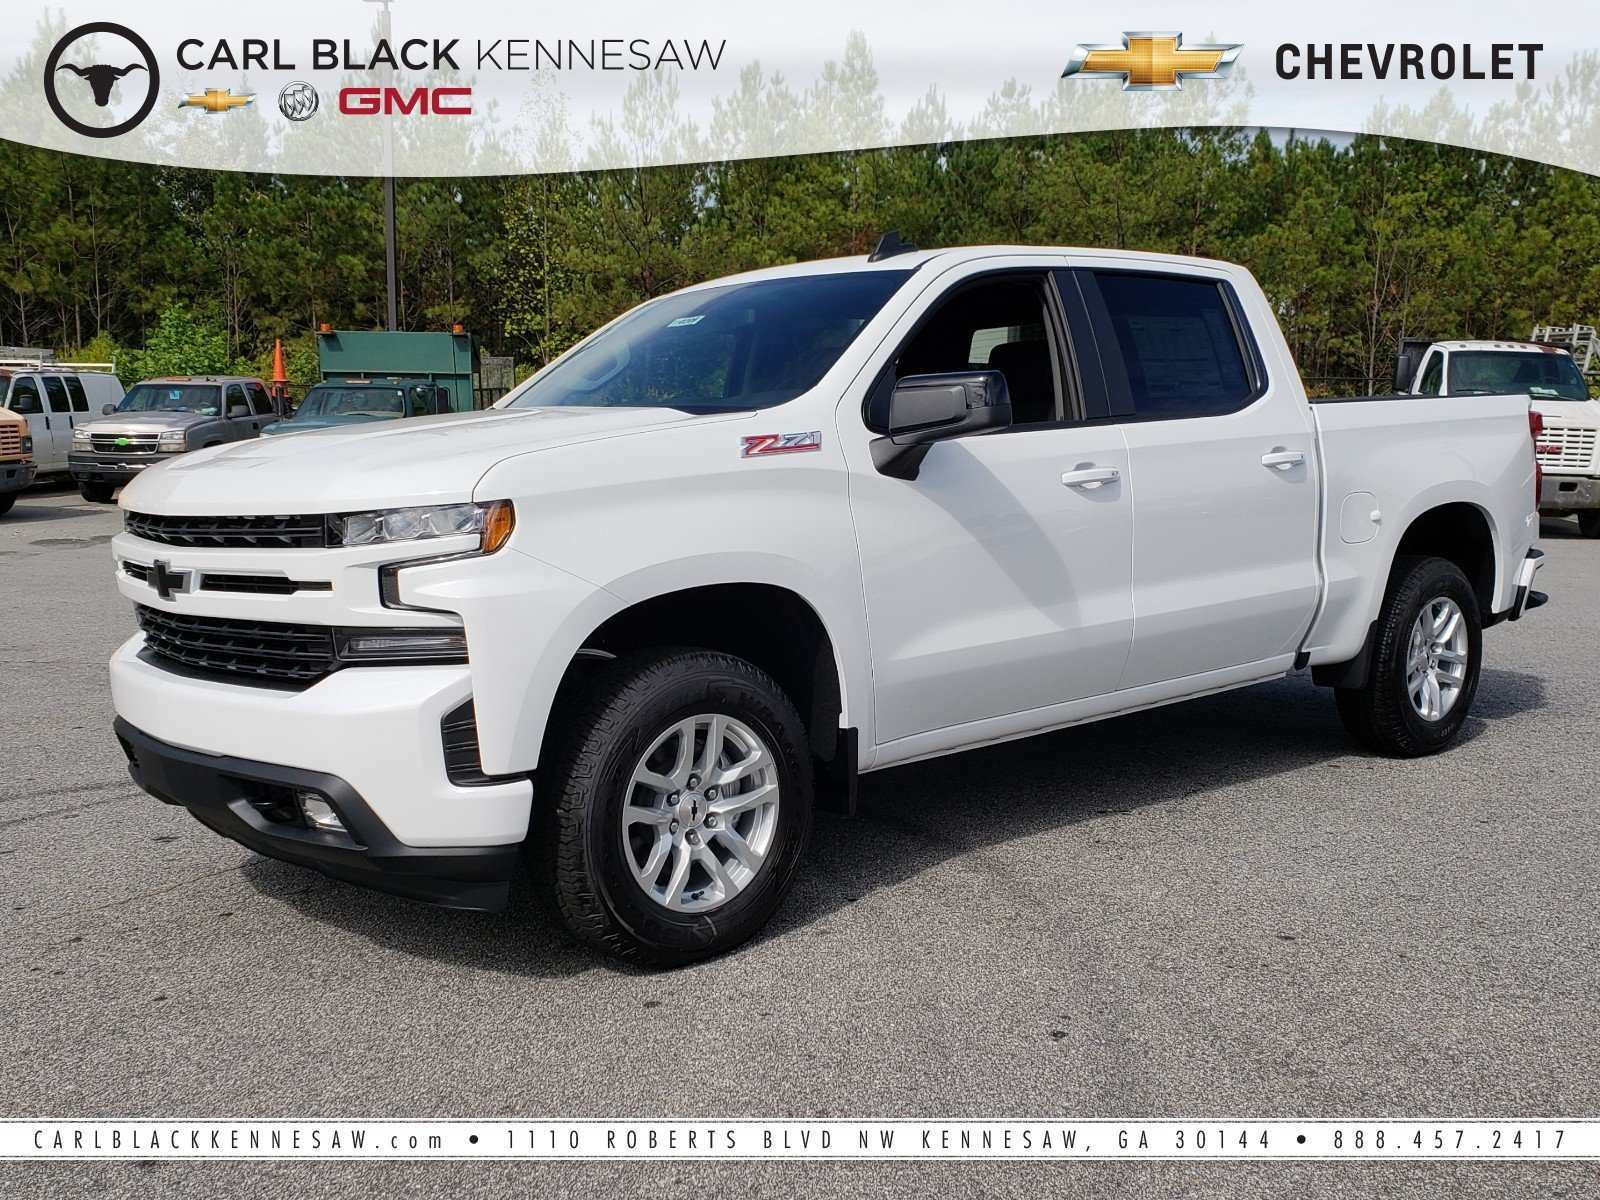 17 All New 2019 Chevy Silverado 1500 Price And Release Date